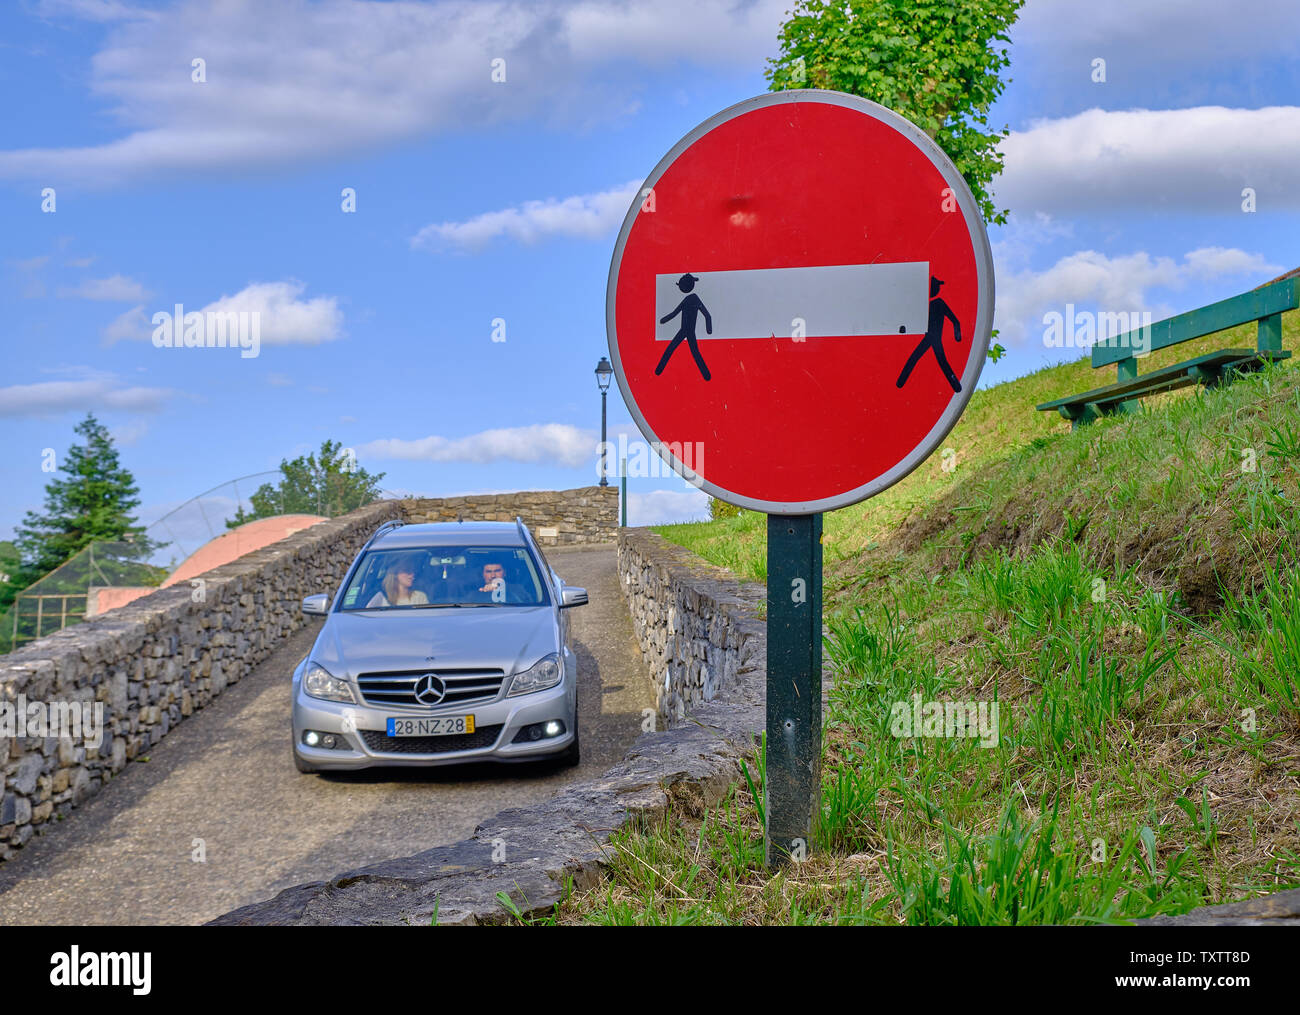 car-driving-through-no-entry-traffic-sign-modified-by-adding-human-shape-sticker-to-make-look-as-if-carrying-the-white-line-espelette-france-TXTT8D.jpg